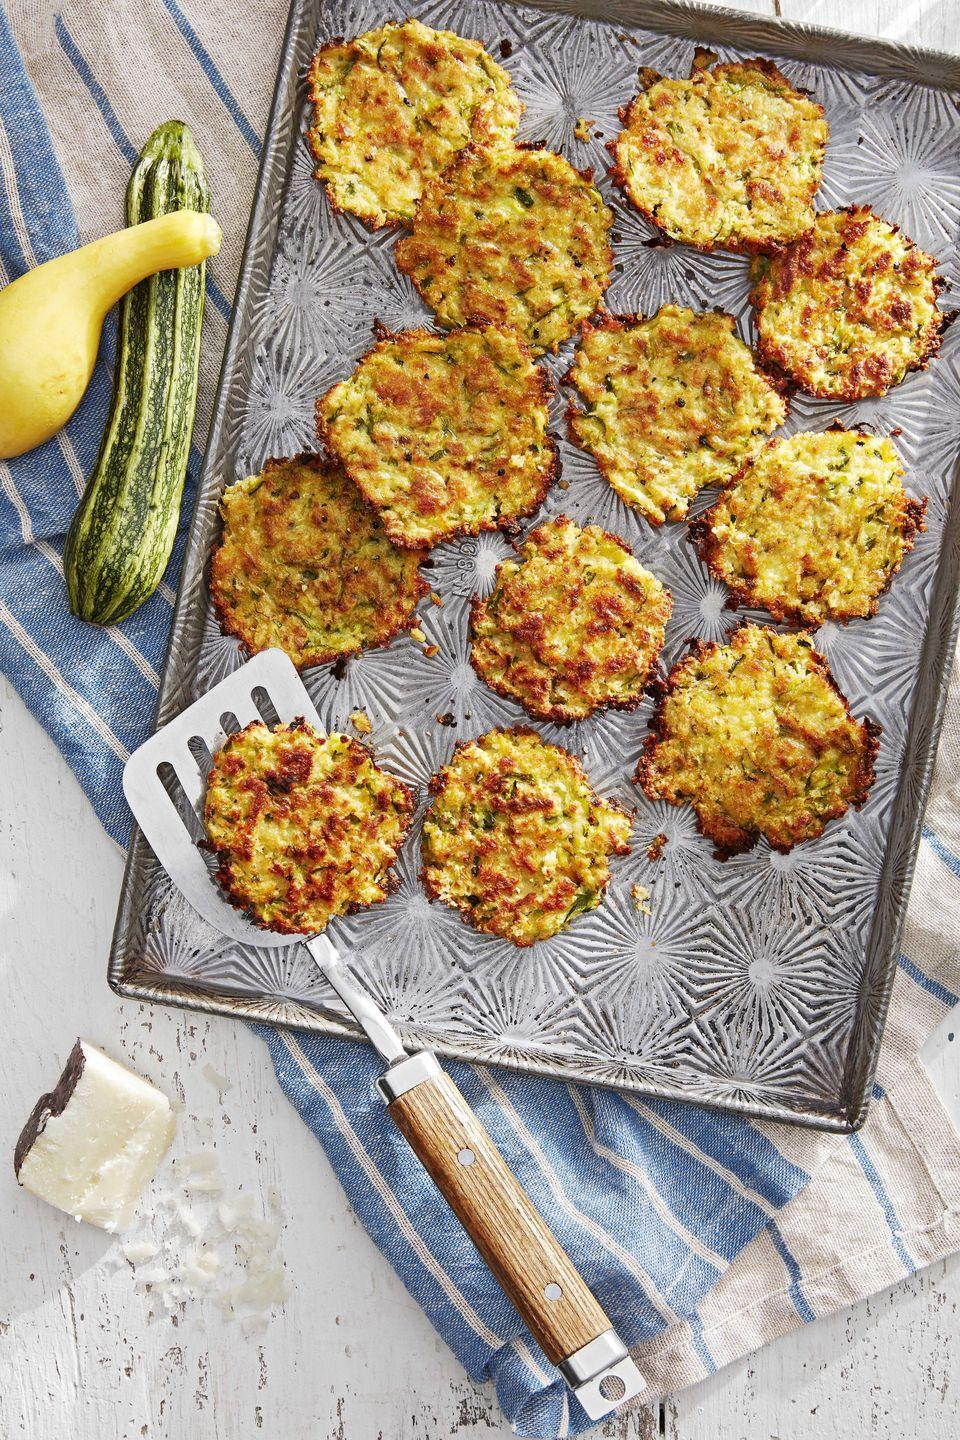 """<p>These oven baked fritters, chock-full of grated zucchini and Pecorino cheese, make a perfect barbecue starter.</p><p><strong><a href=""""https://www.countryliving.com/food-drinks/a28610429/zucchini-and-pecorino-fritters-recipe/"""" rel=""""nofollow noopener"""" target=""""_blank"""" data-ylk=""""slk:Get the recipe"""" class=""""link rapid-noclick-resp"""">Get the recipe</a>.</strong></p>"""